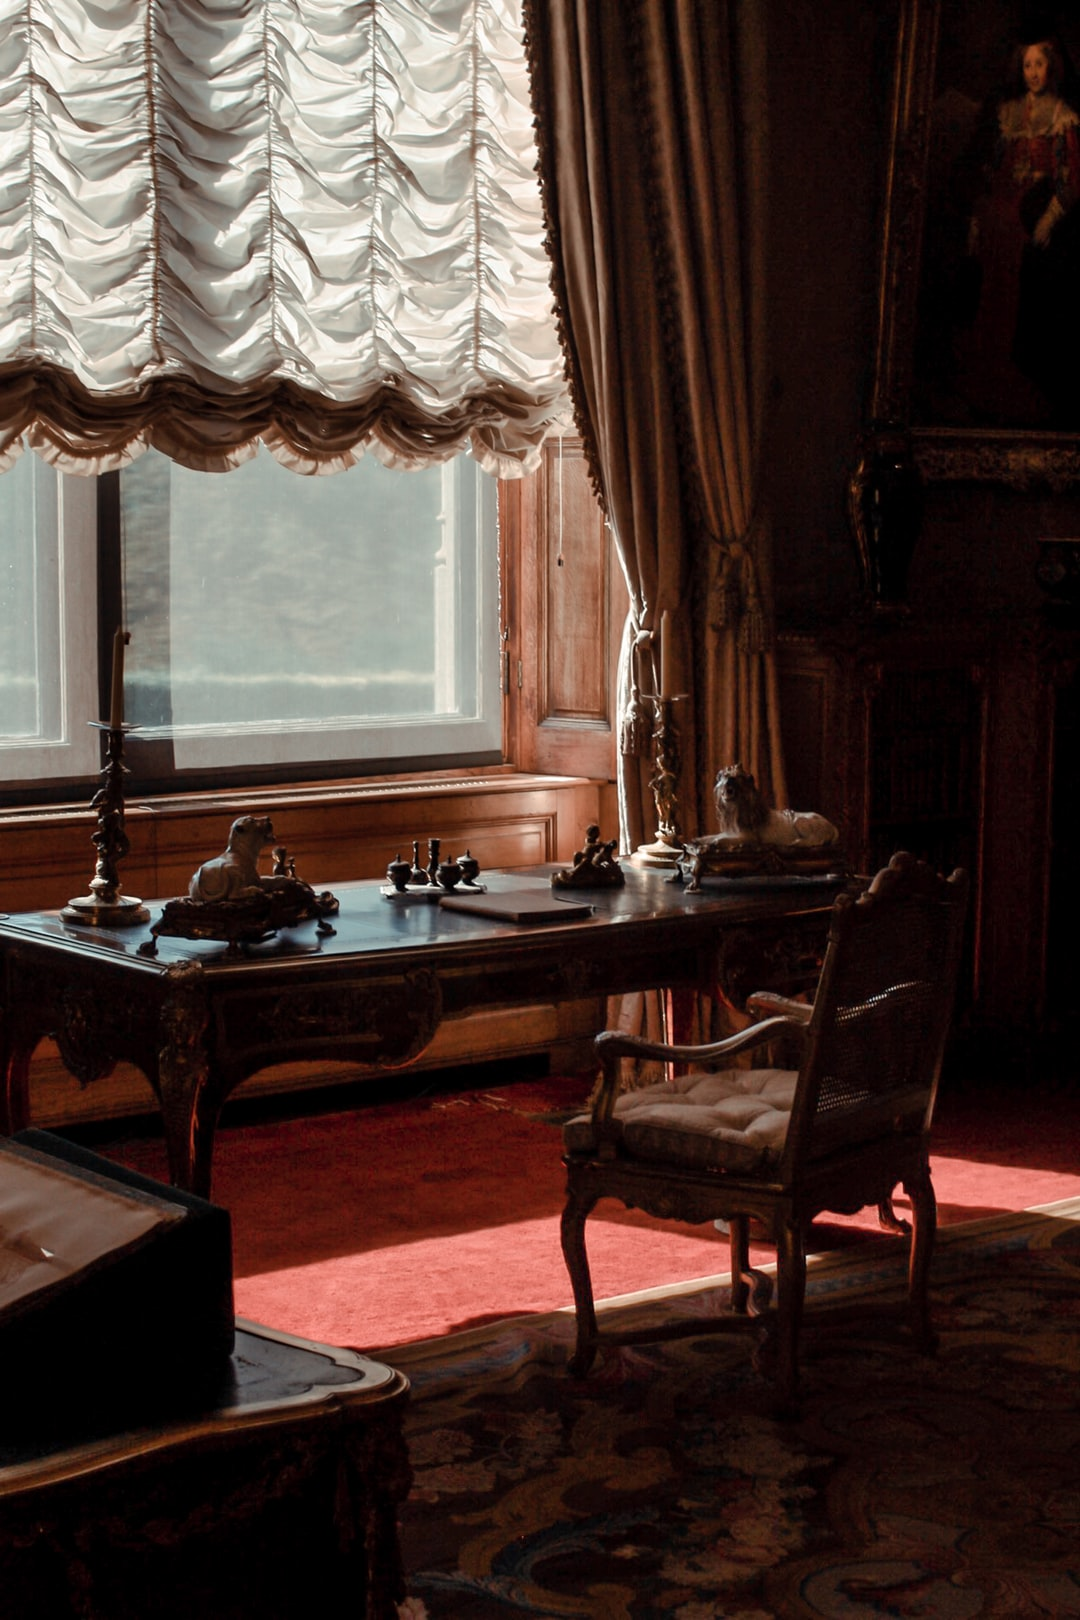 Antique furniture in manor house with lighting from the window and a desk, chair, rug and curtains